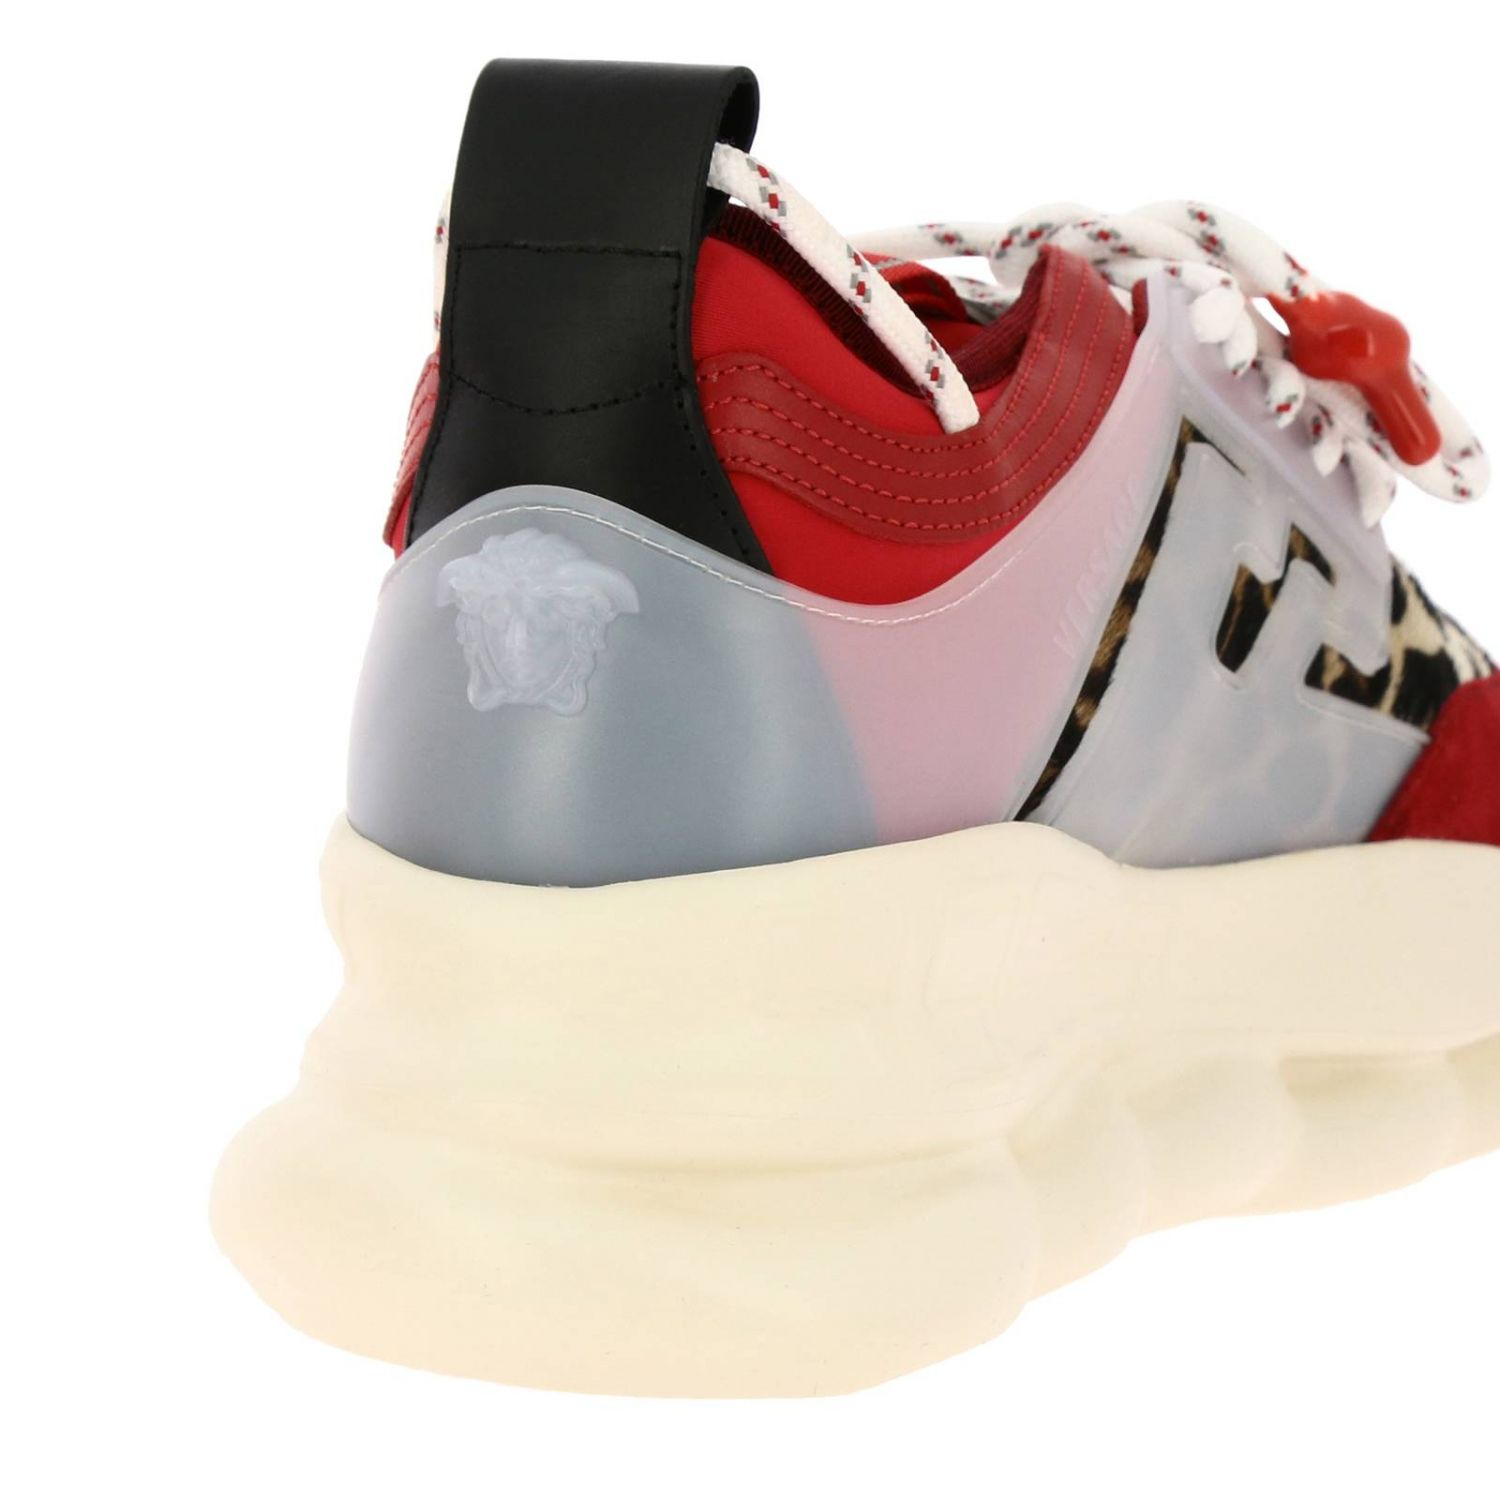 Trainers Versace: Versace Chain Reaction sneakers in neoprene and spotted fabric red 4